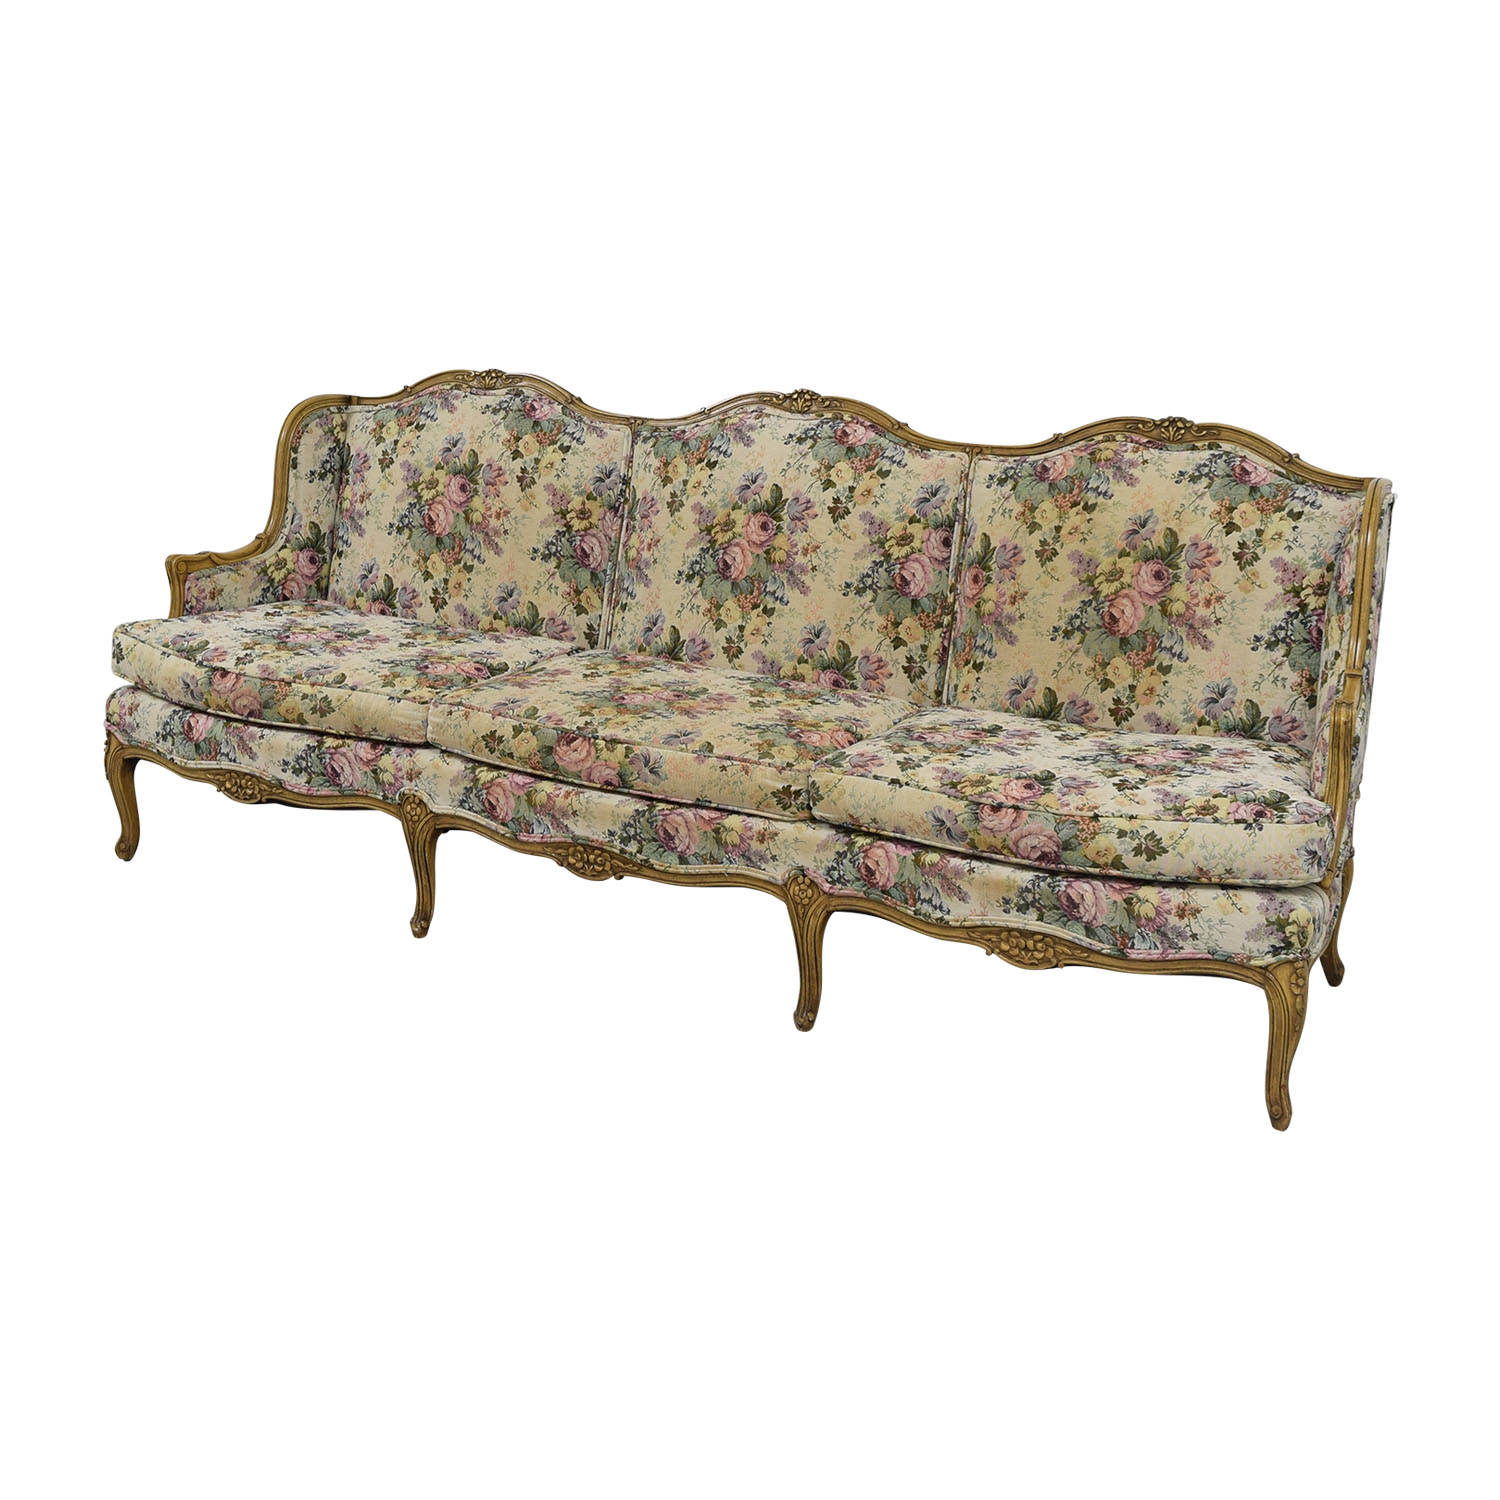 room sa and slipcovers sofa covered loveseat sofas red covers floral living loveseats couch print